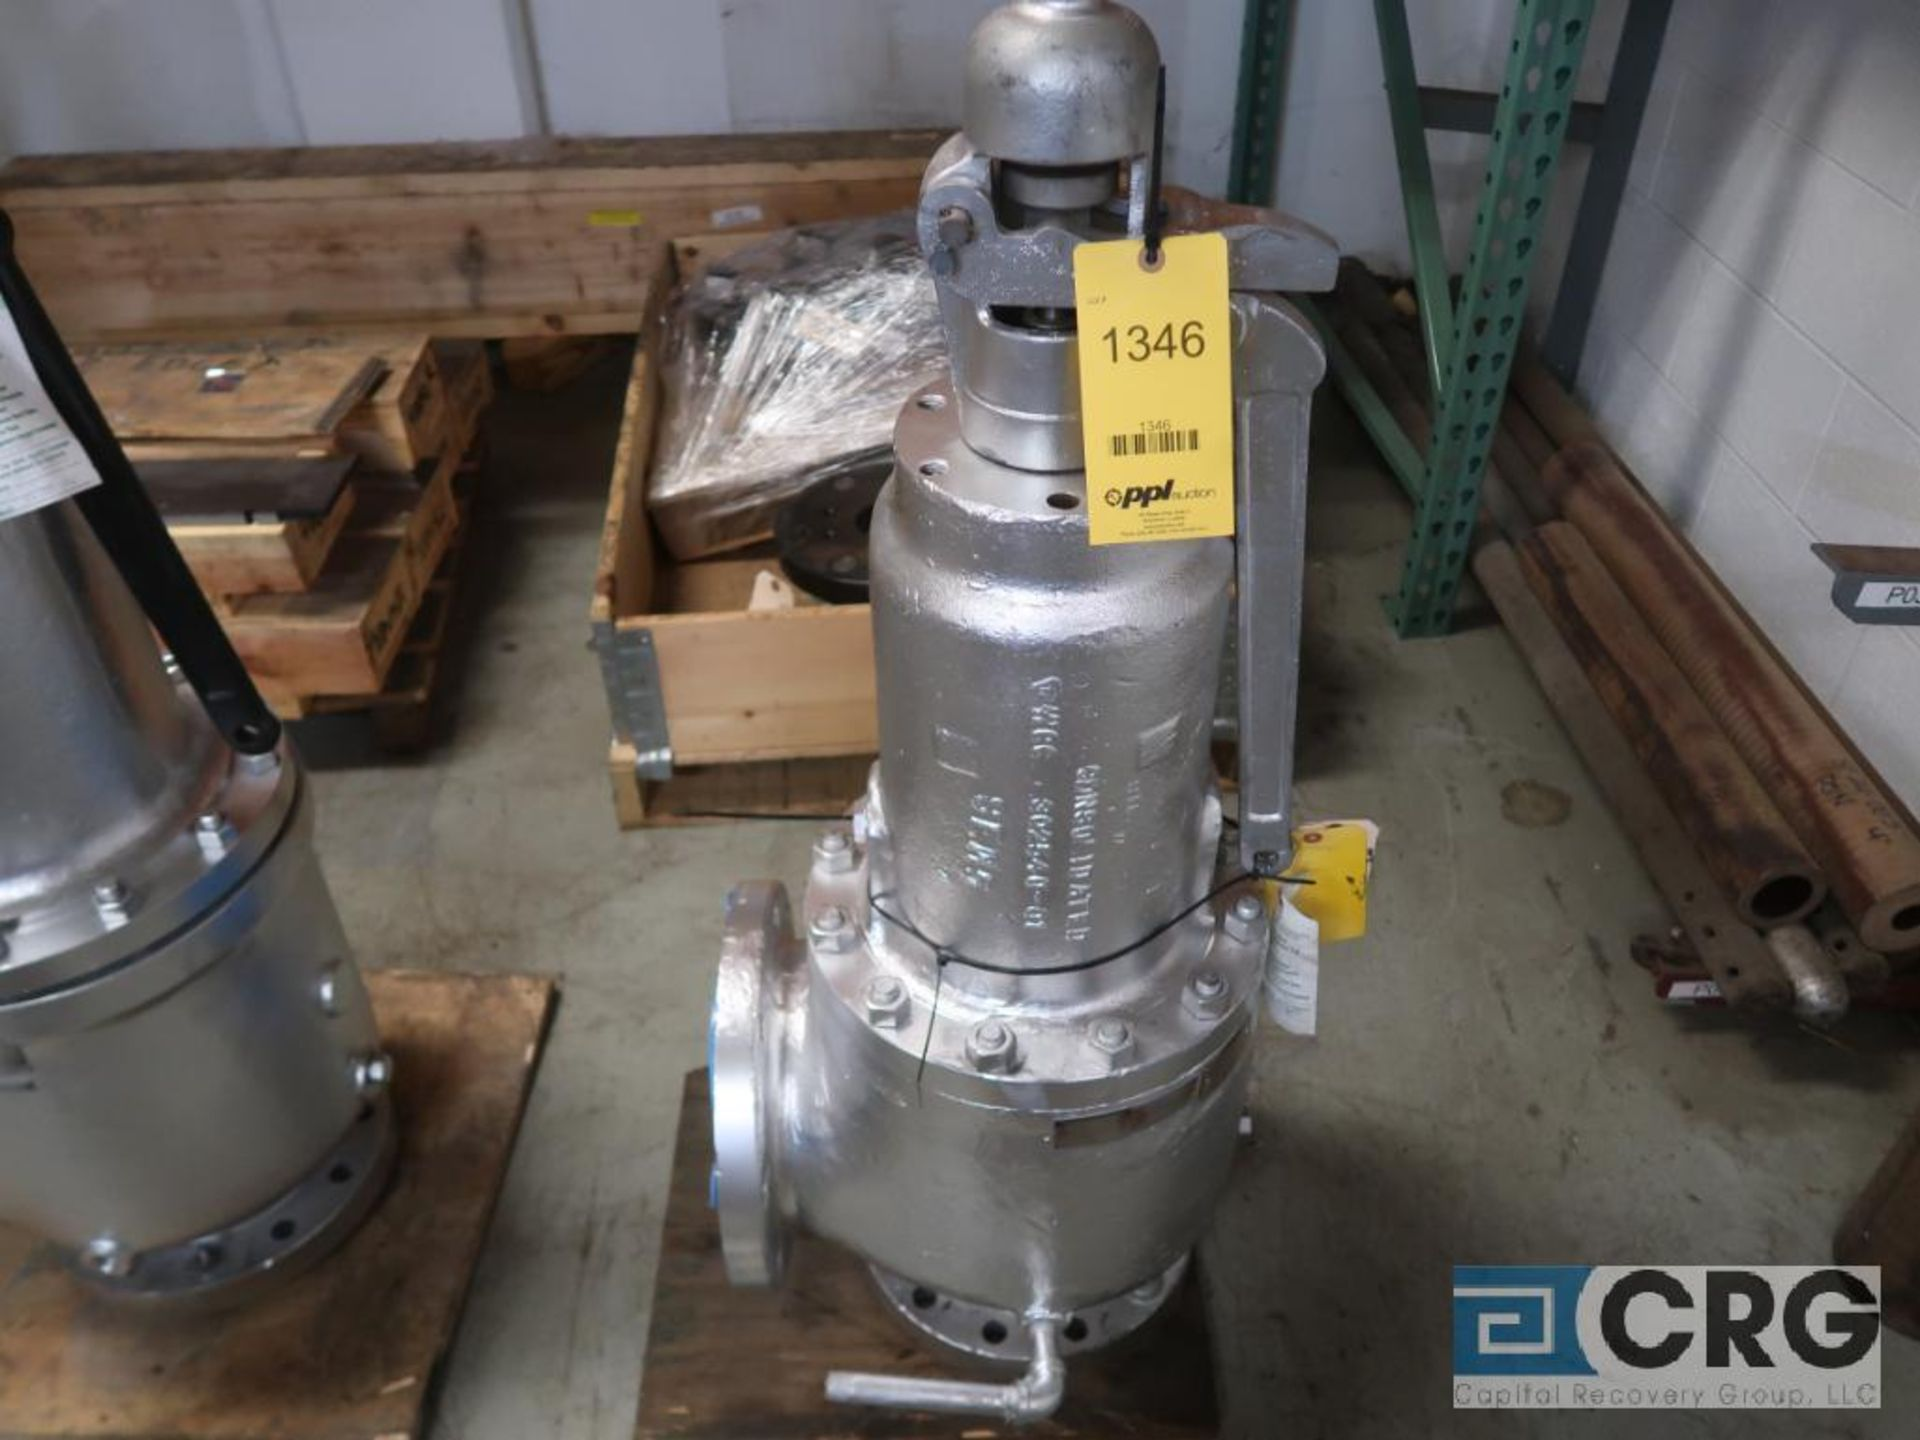 Consolidate 8 in. safety relief valve CL 150 (Store Basement)